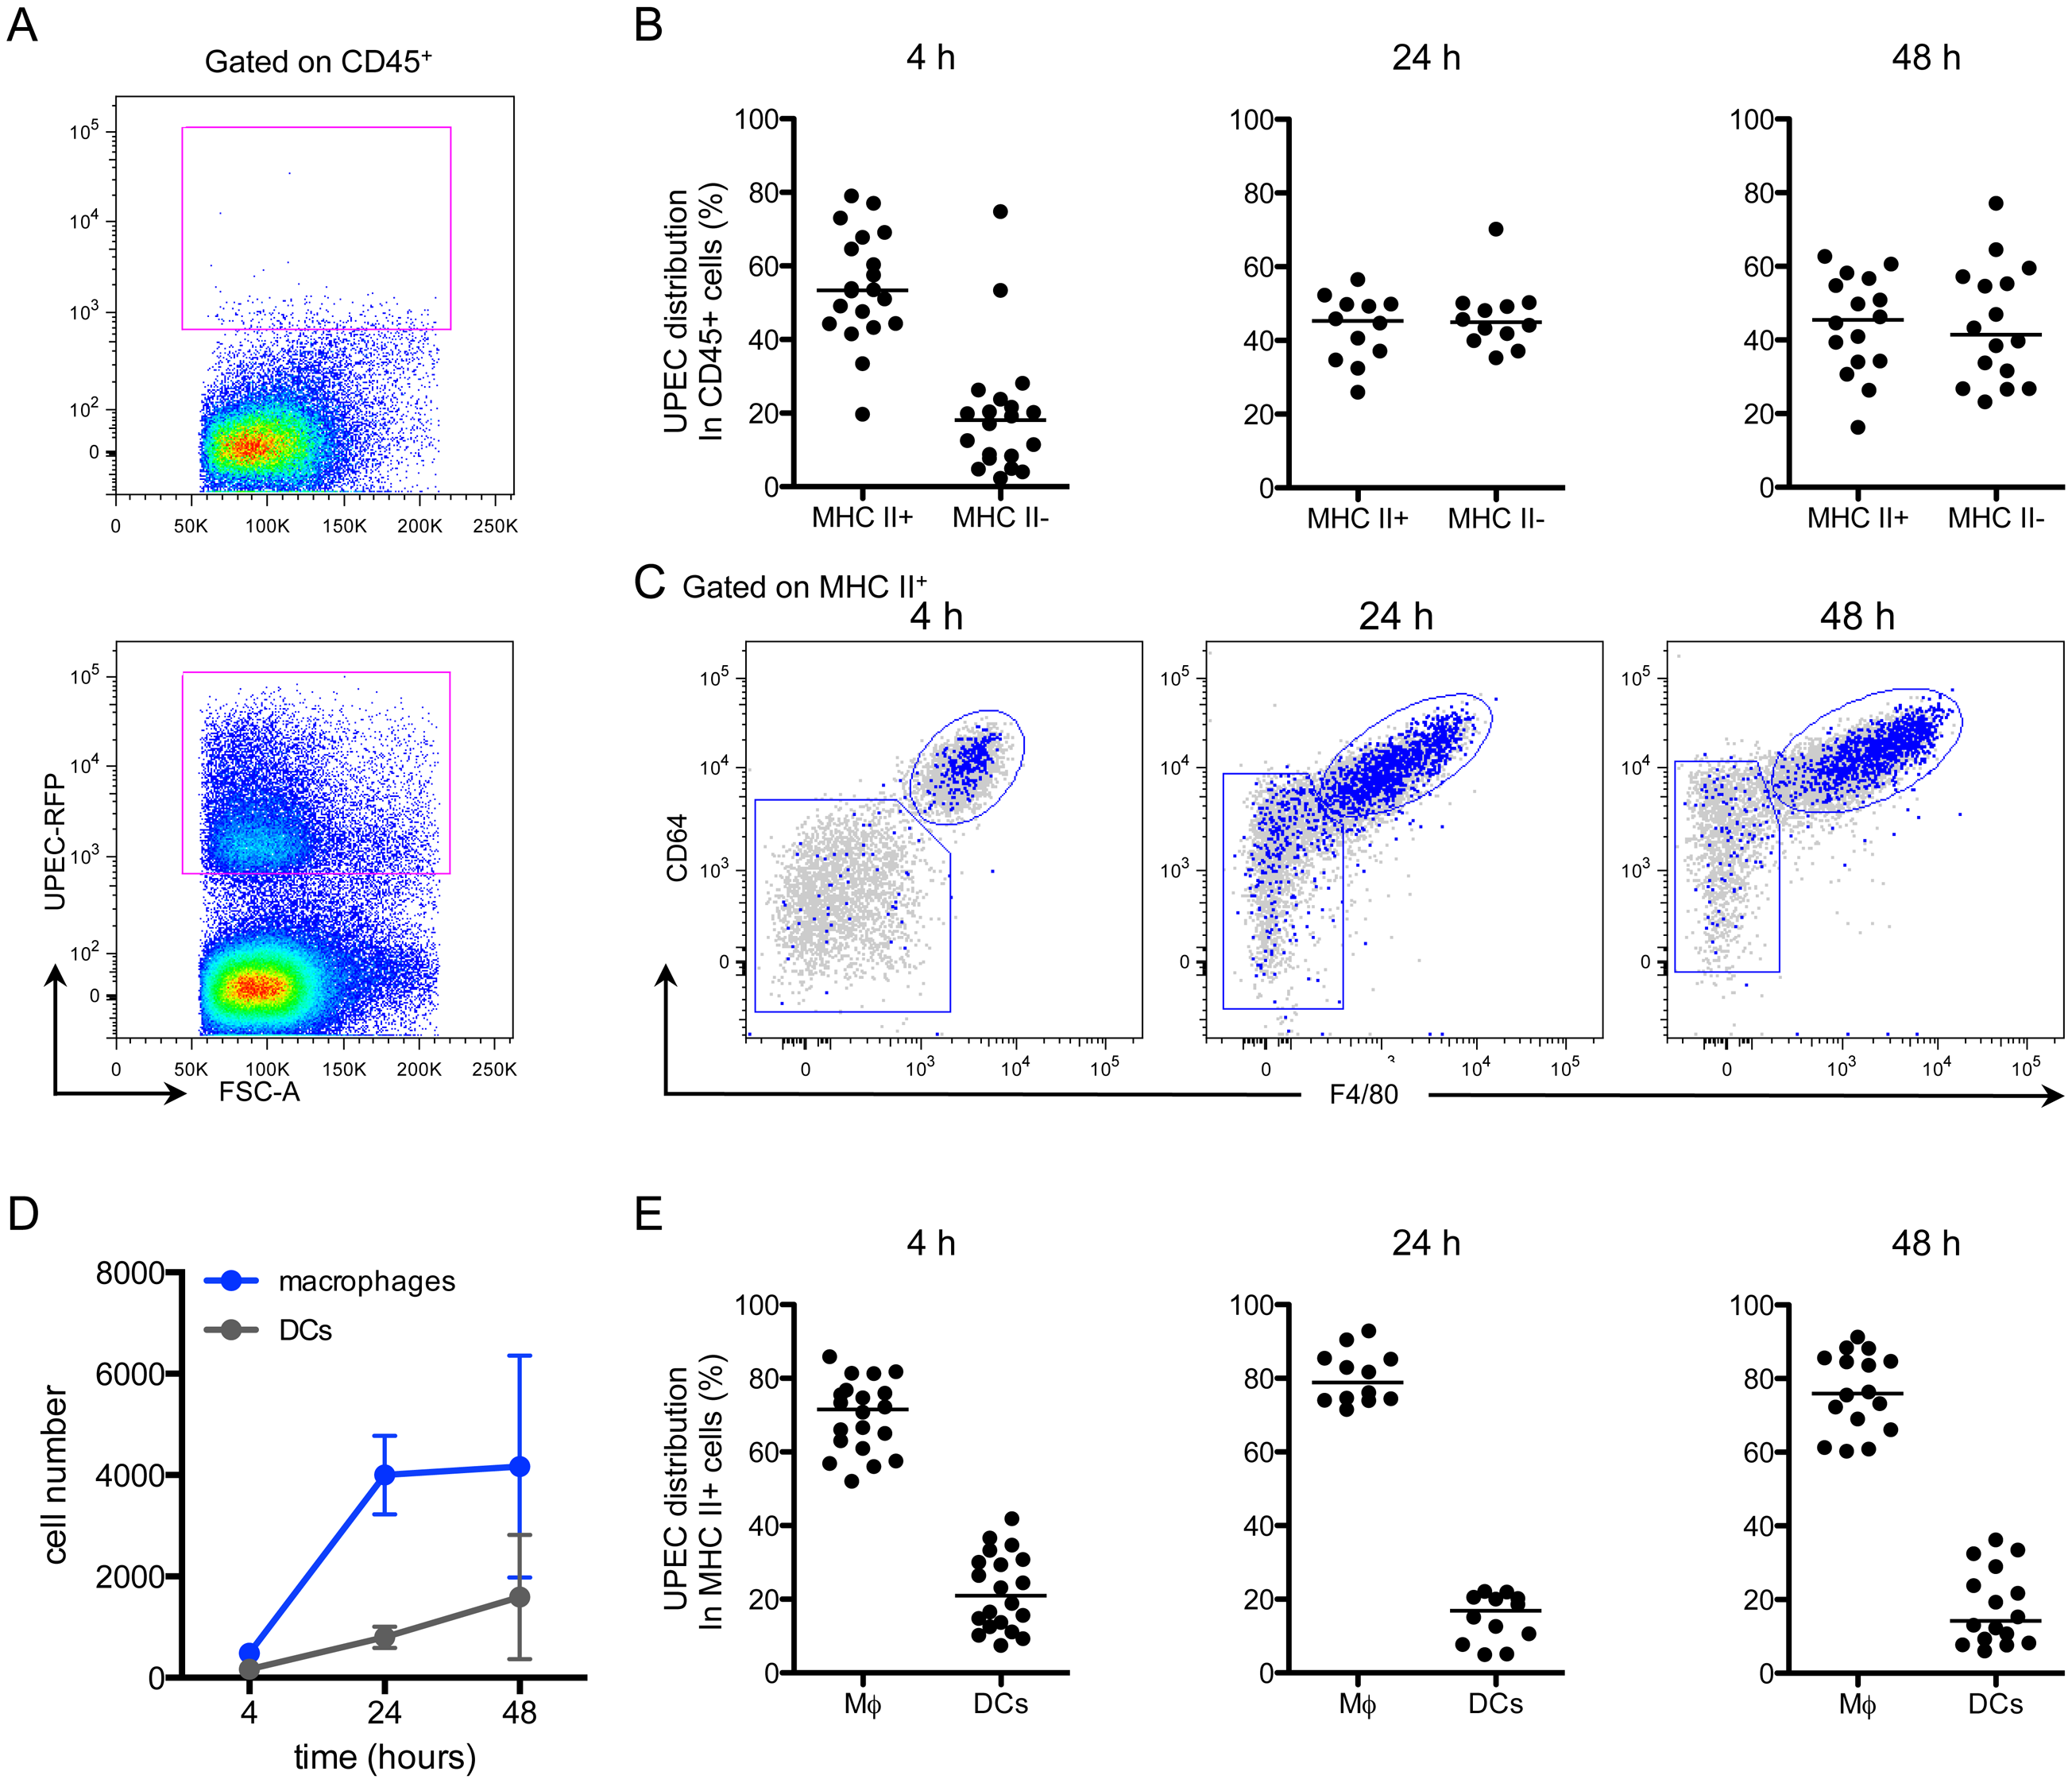 Macrophages preferentially take up UPEC at early times post-infection.